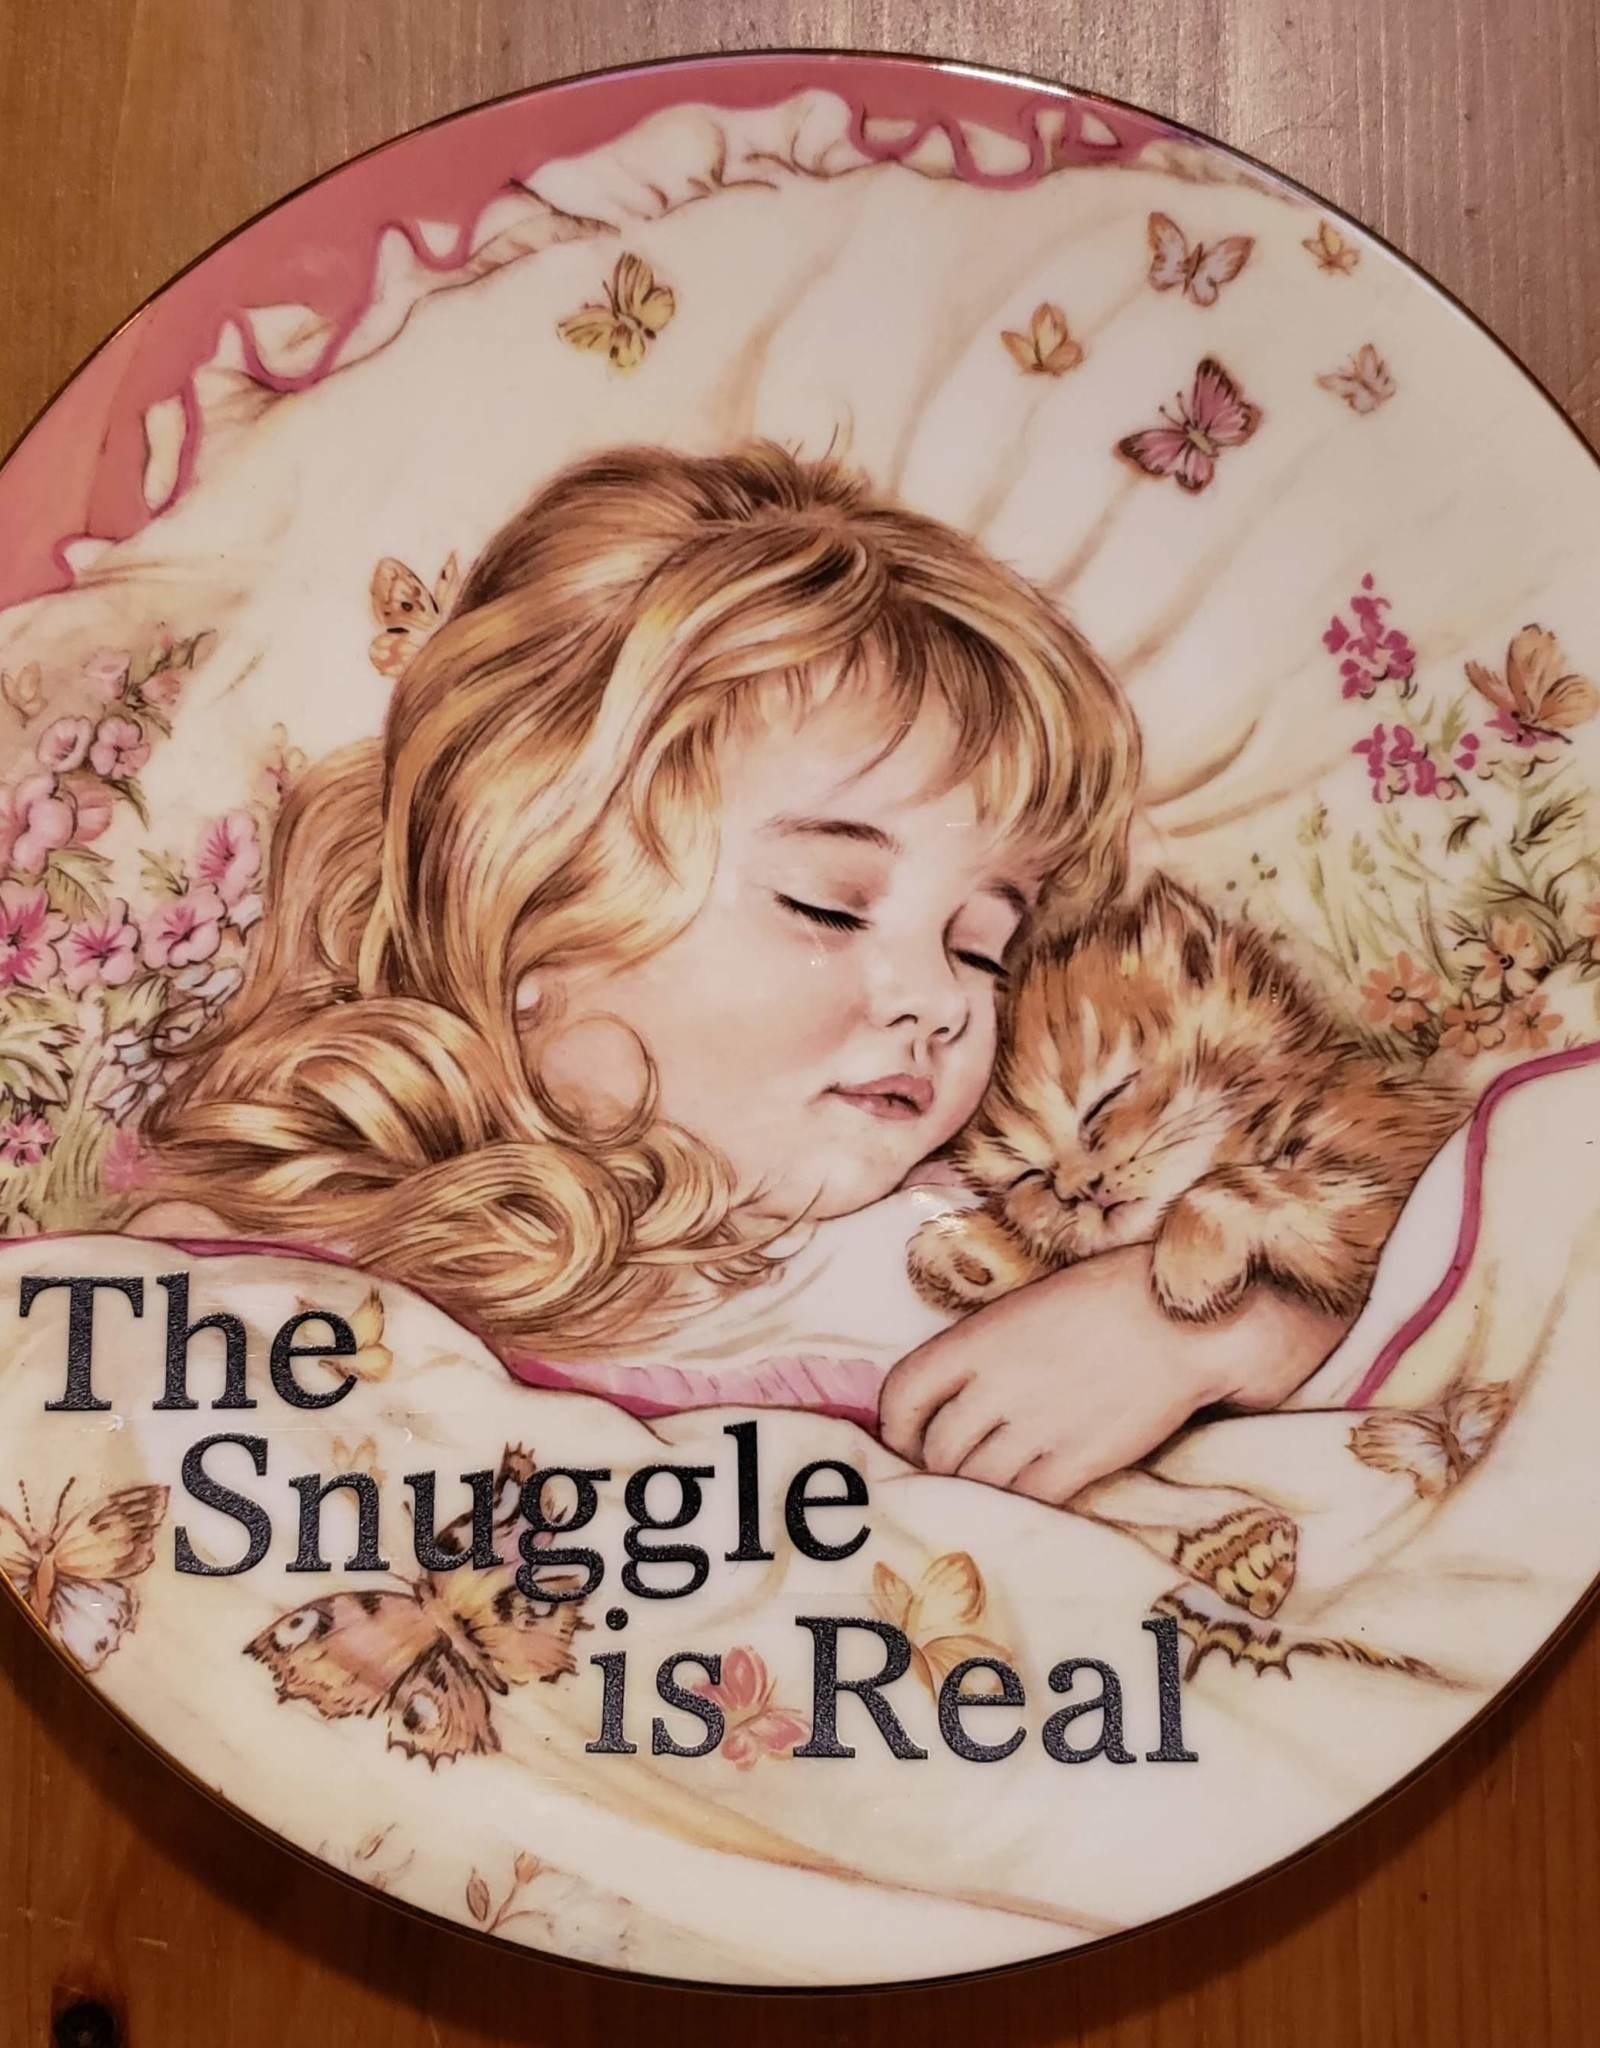 "Redux ""The Snuggle is Real"" Vintage Upcycled Plate Art"